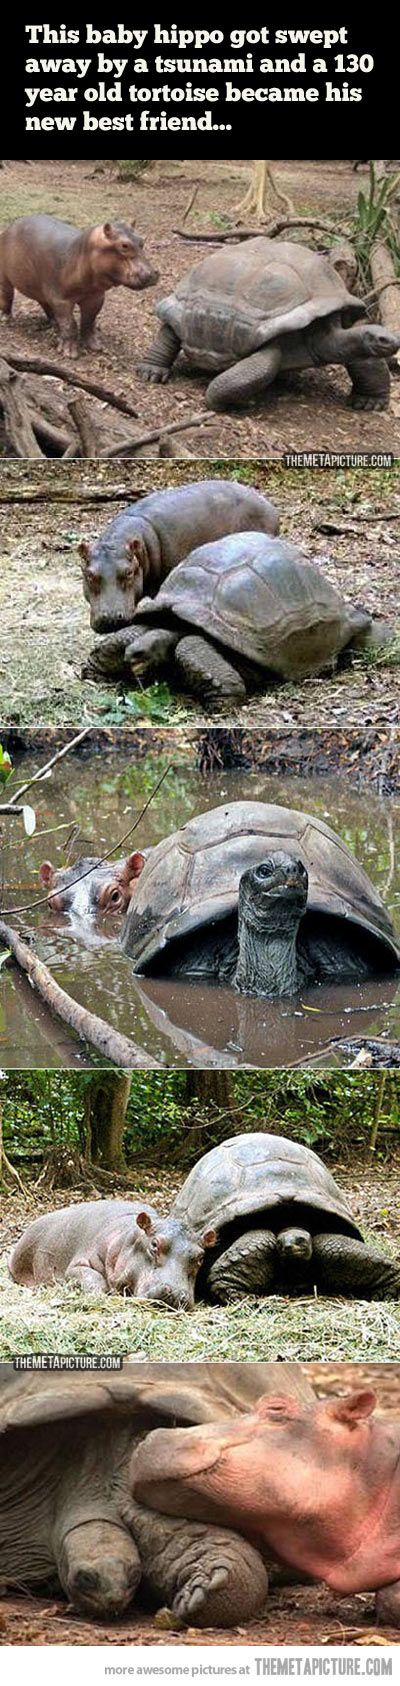 Baby hippo and 130 year old tortoise become best friends… THE CUTEST